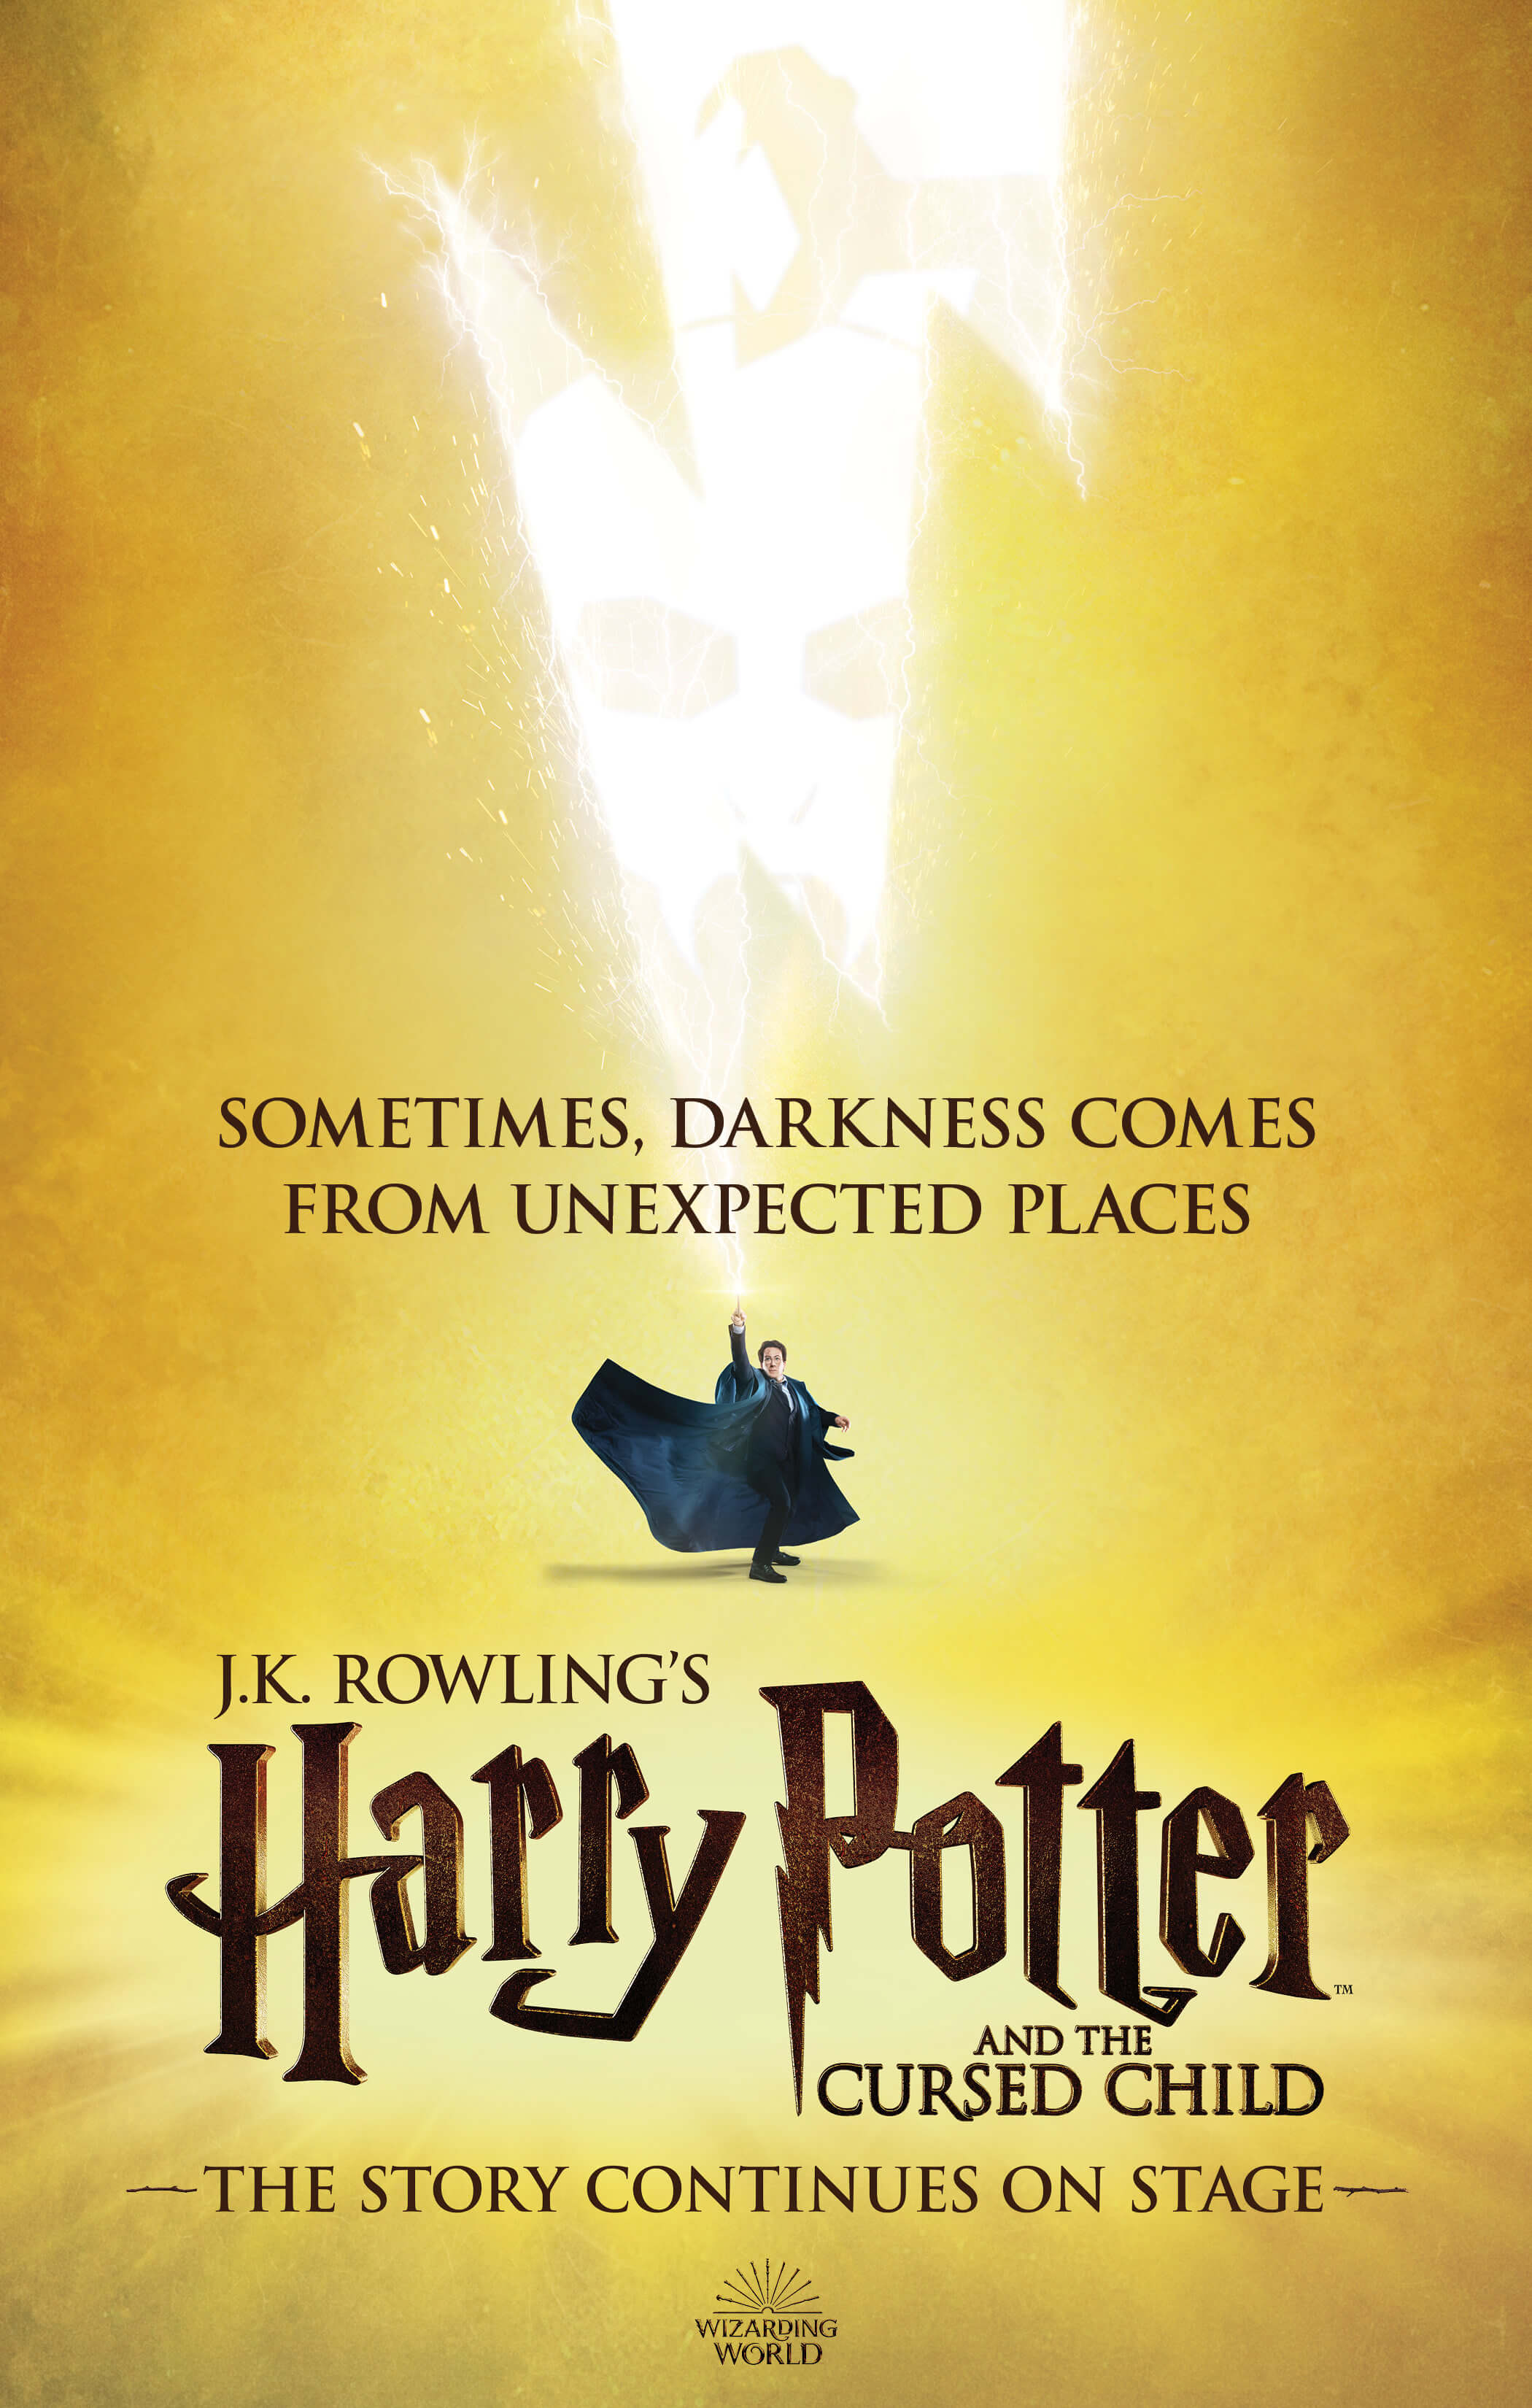 Potterish.com [Year 18] :: Harry Potter, The Ickabog, Fantastic Beasts, JK Rowling, Daniel, Emma & Rupert The Cursed Child surprise: a new poster released at Times Square